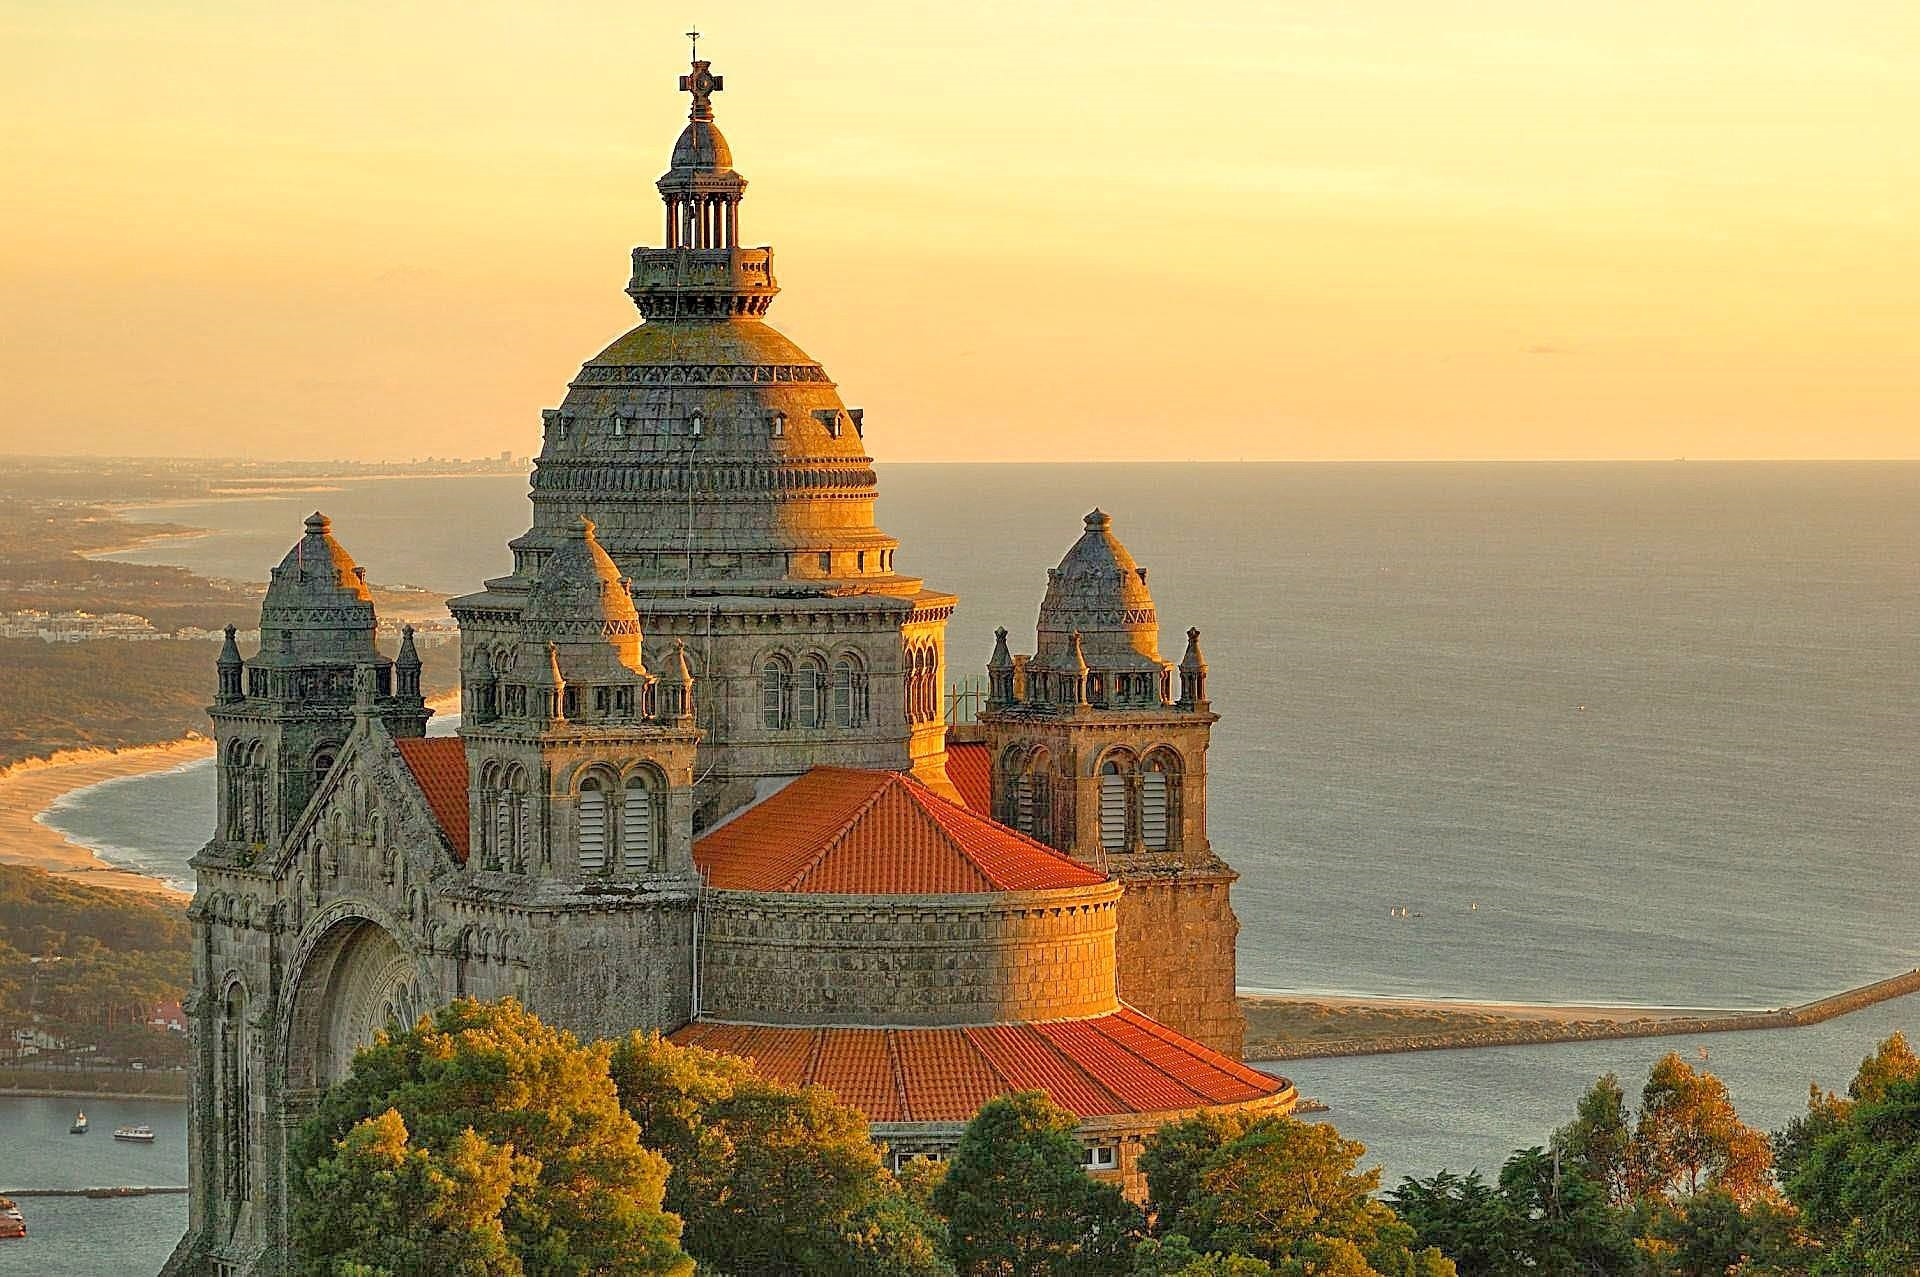 Secrets from Viana do Castelo: Everything You Need to See viana do castelo Secrets from Viana do Castelo: Everything You Need to See Viana do castelo1